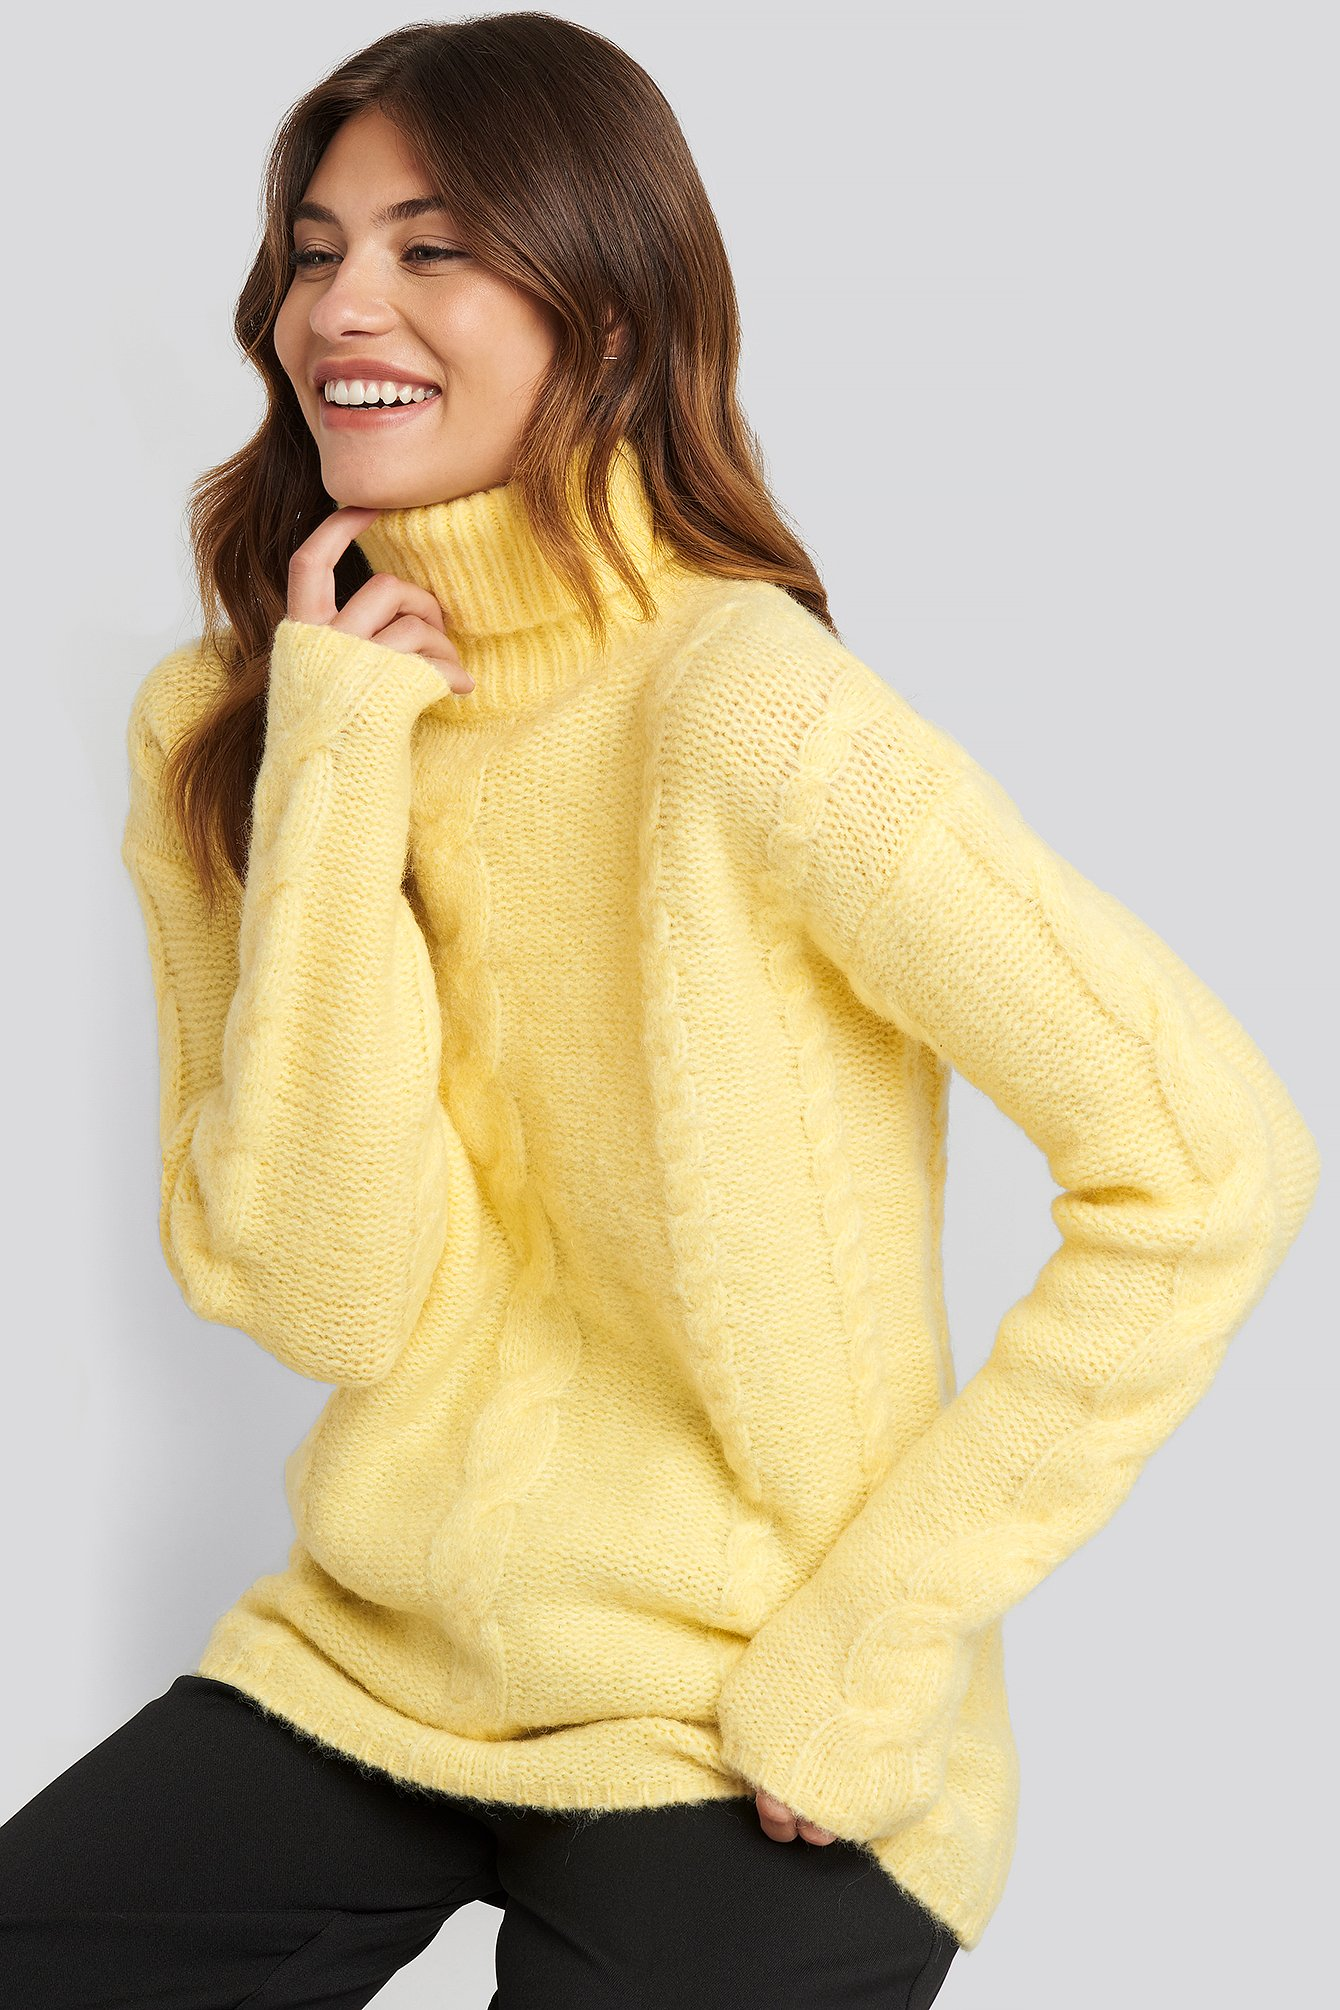 Wool Blend Cable Knitted Sweater Yellow by Na Kd